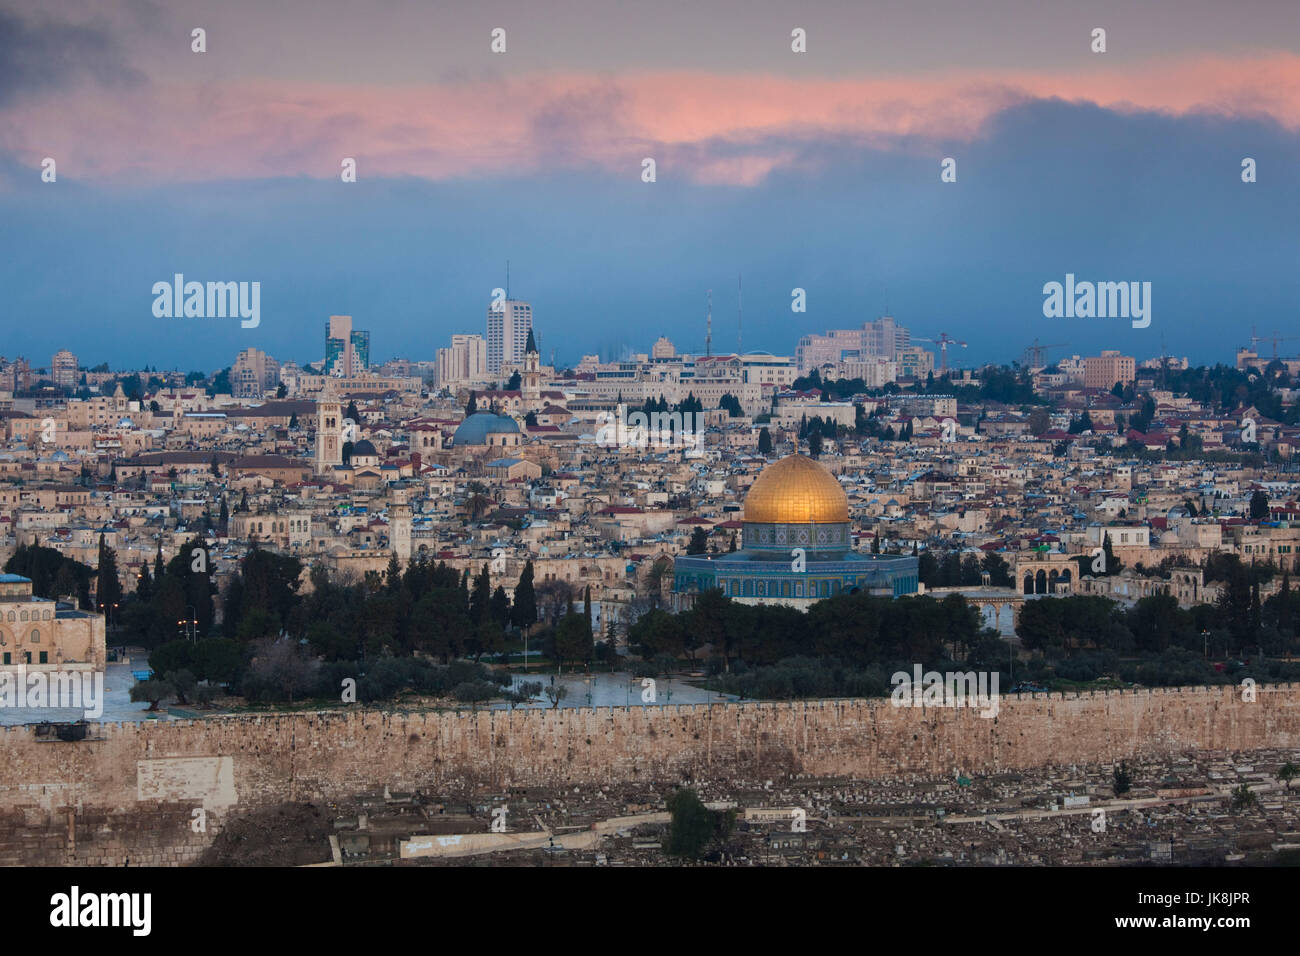 Israel, Jerusalem, elevated city view with Temple Mount and Dome of the Rock from the Mount of Olives, dawn - Stock Image